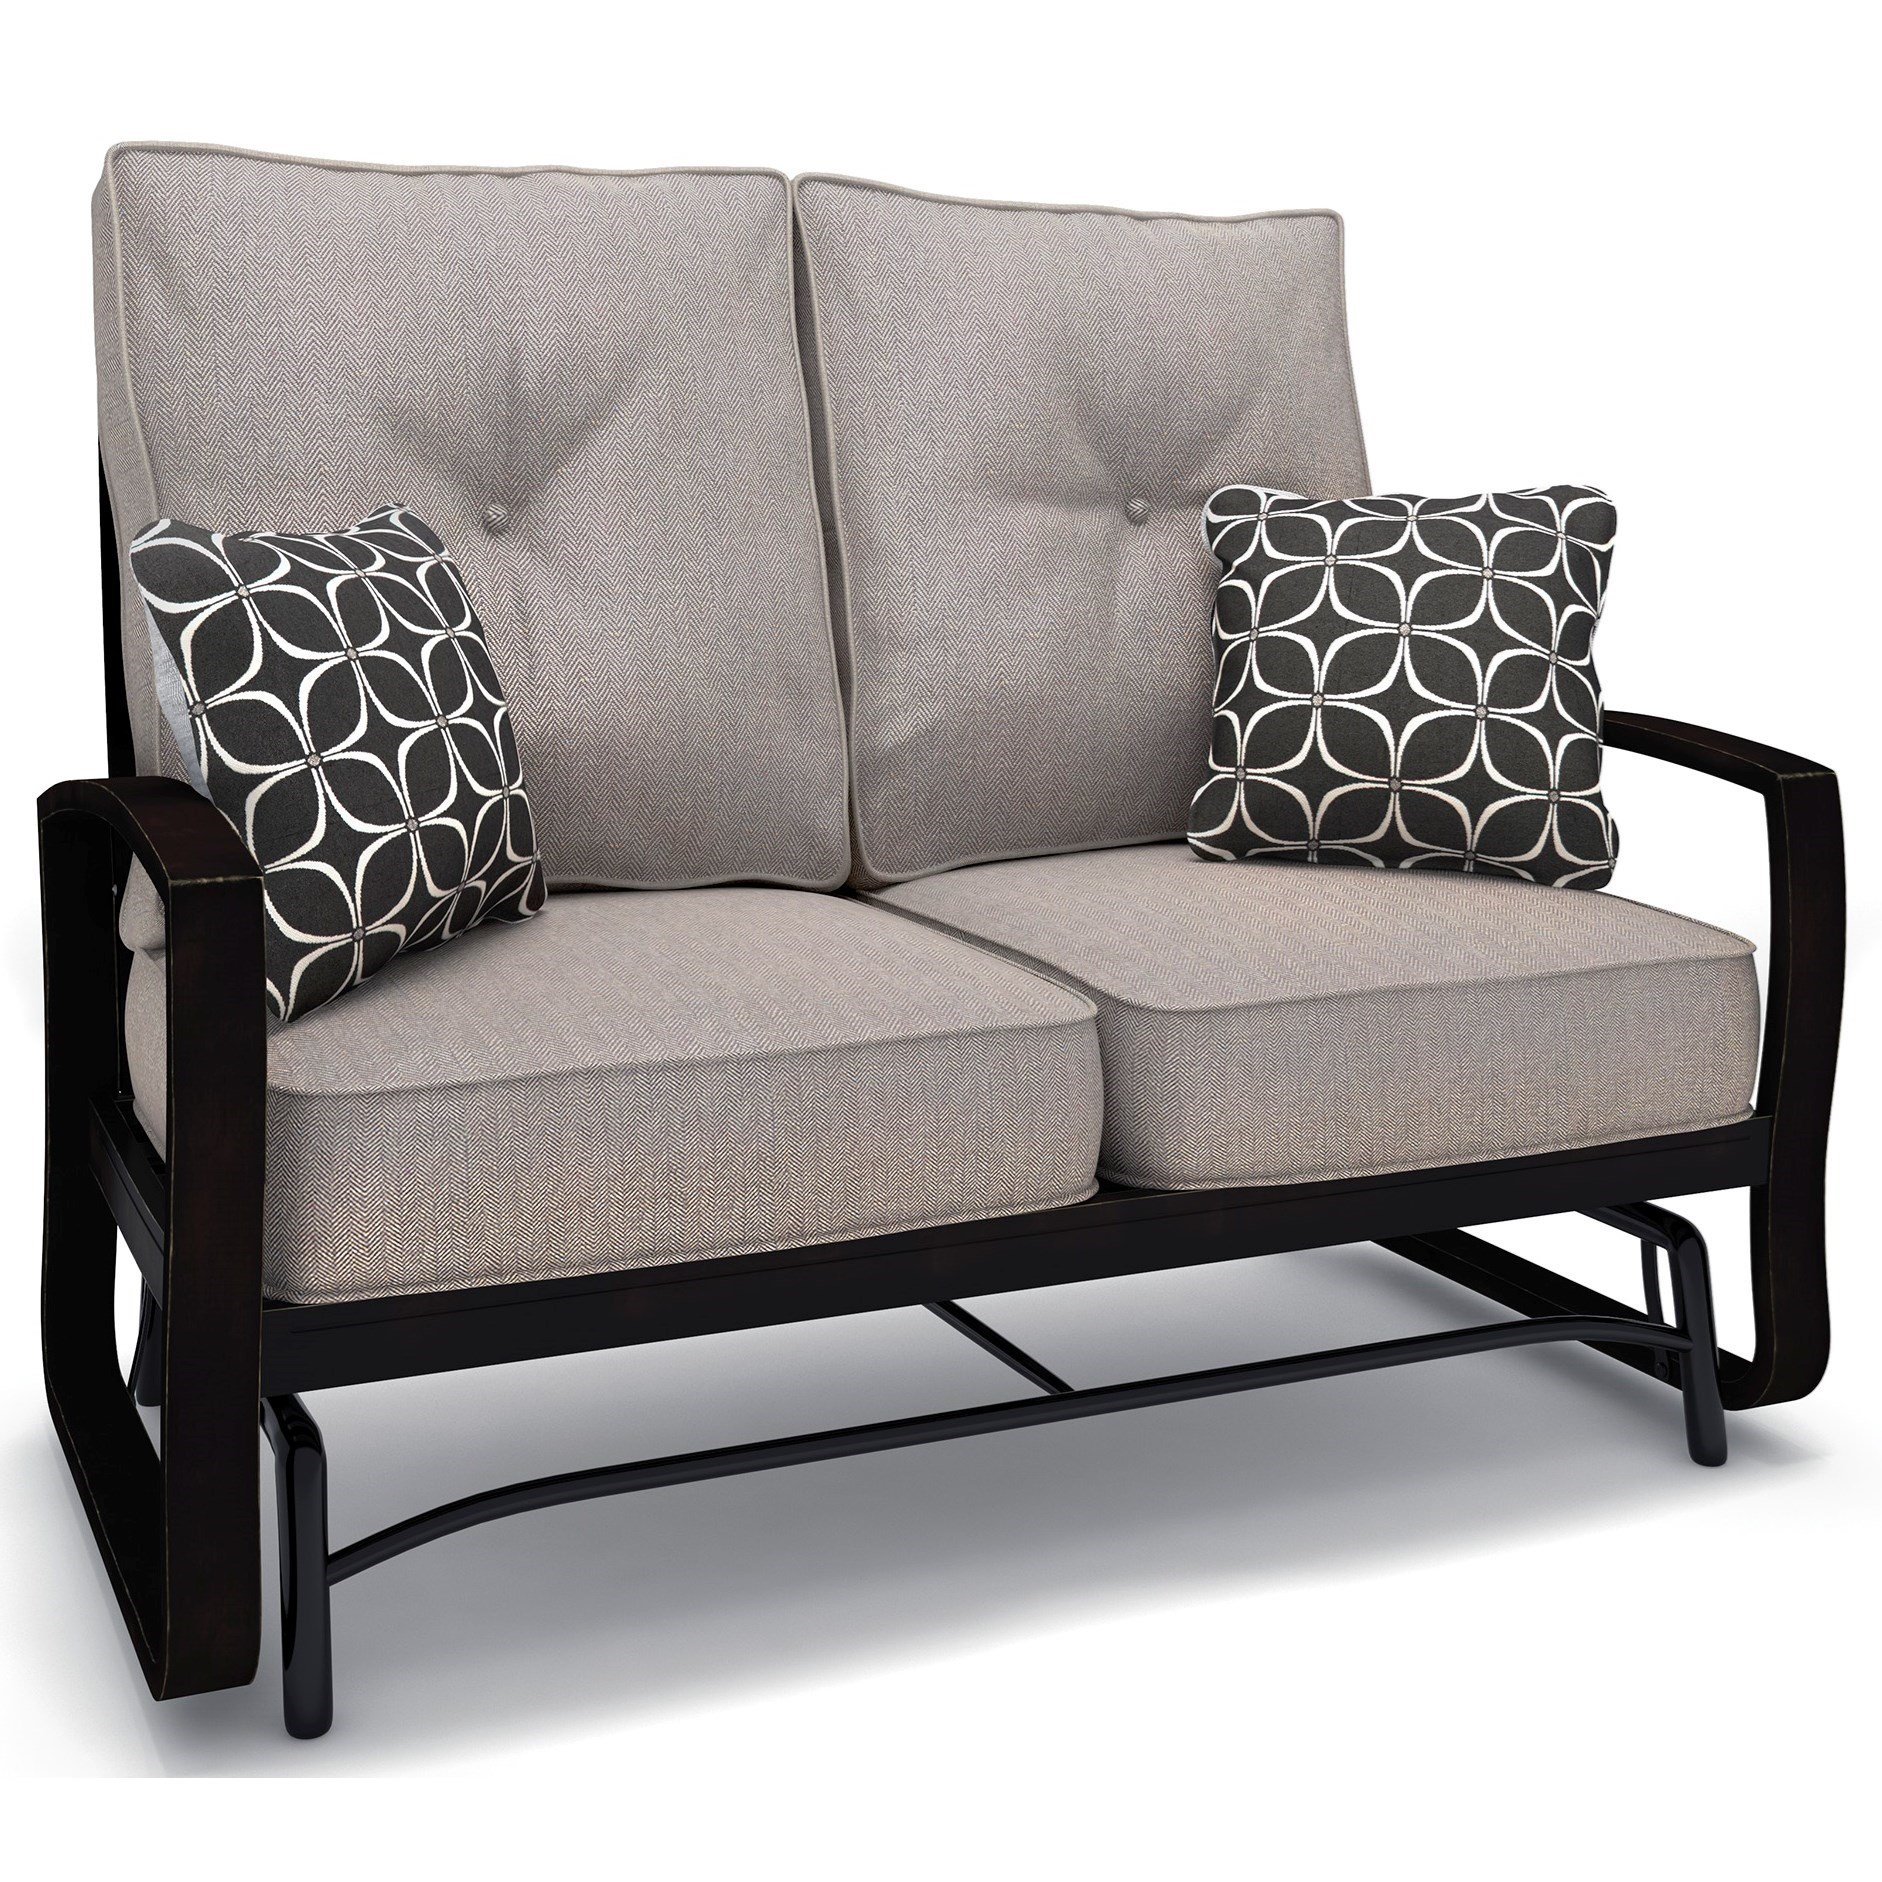 Signature Design By Ashley Castle Island Loveseat Glider With Cushion Wayside Furniture